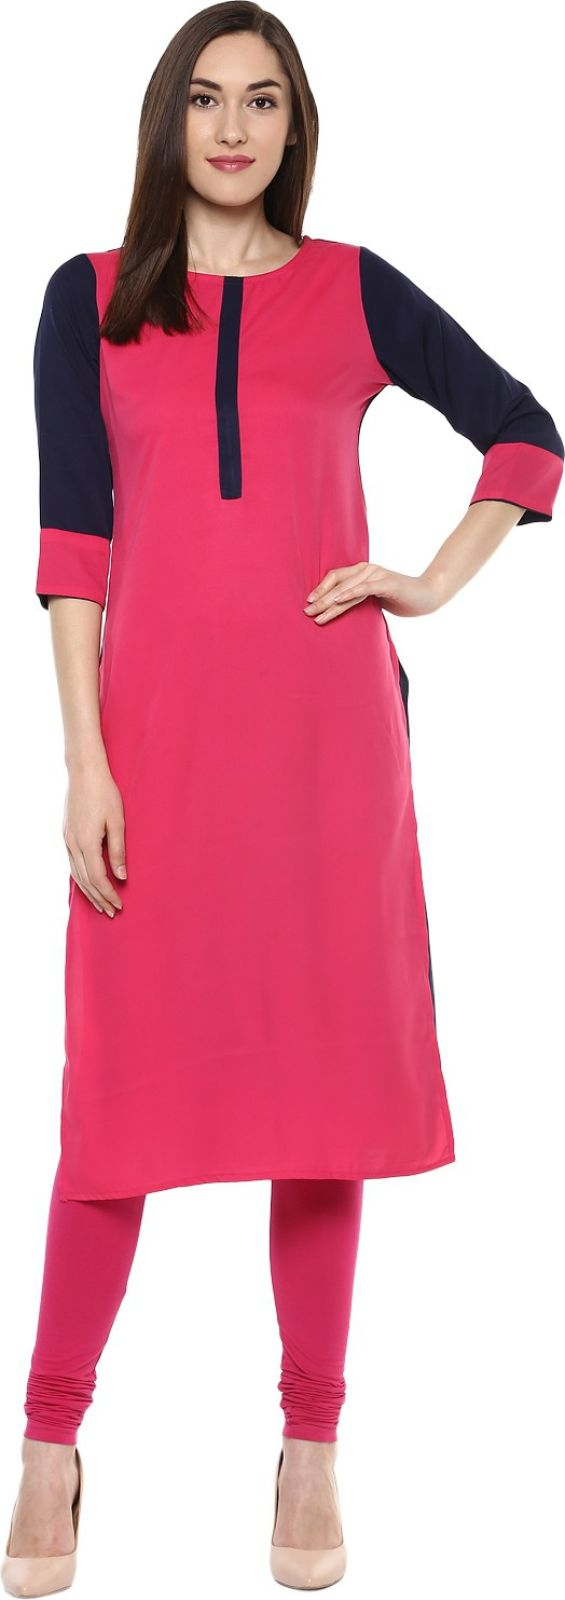 KRAPAL Casual Solid Women Kurti (Pink, Blue)